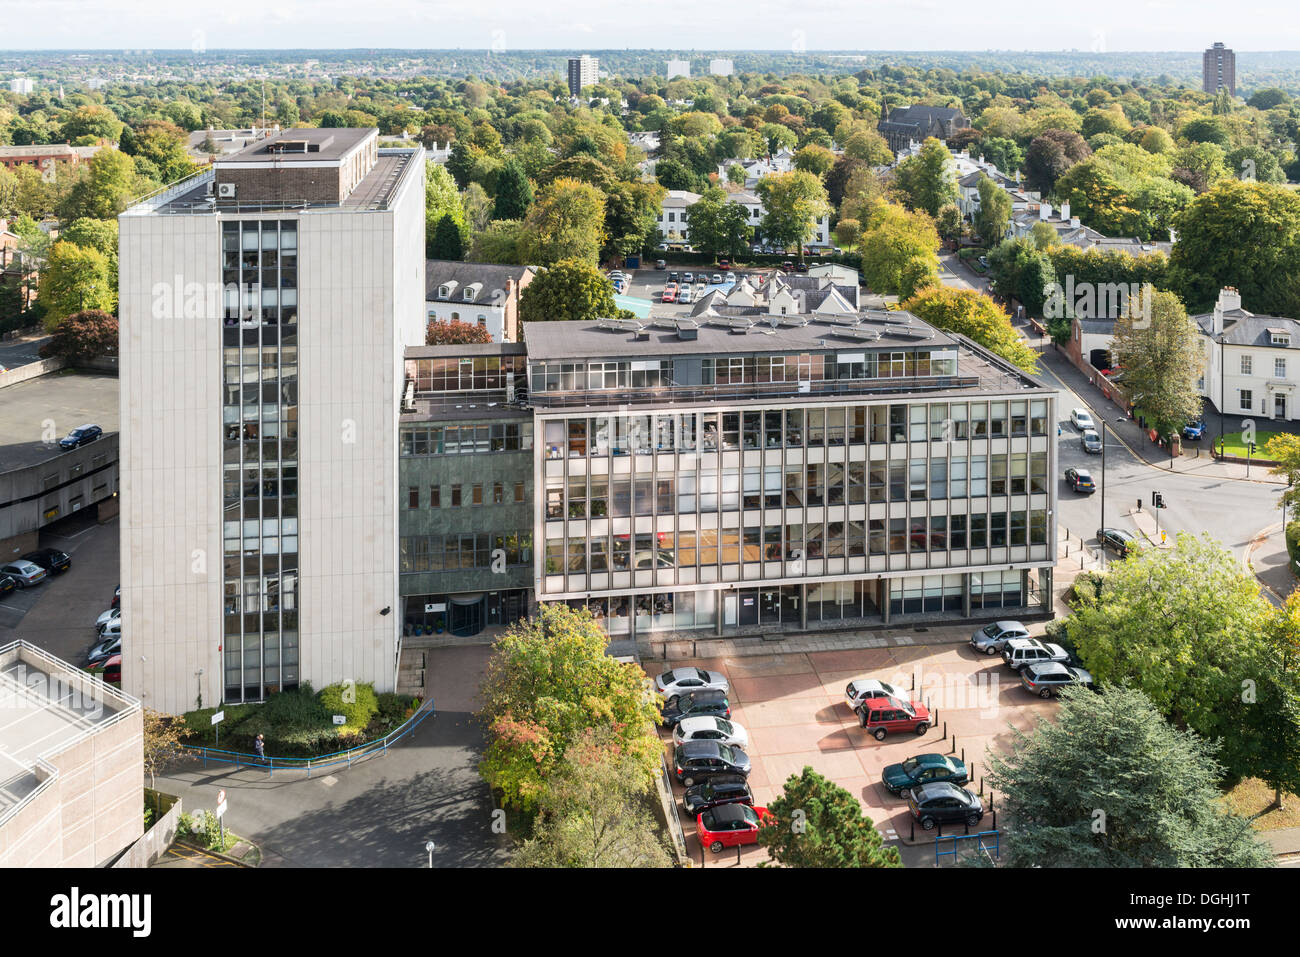 La Chambre de Commerce office building, Edgbaston, Birmingham, Angleterre Photo Stock